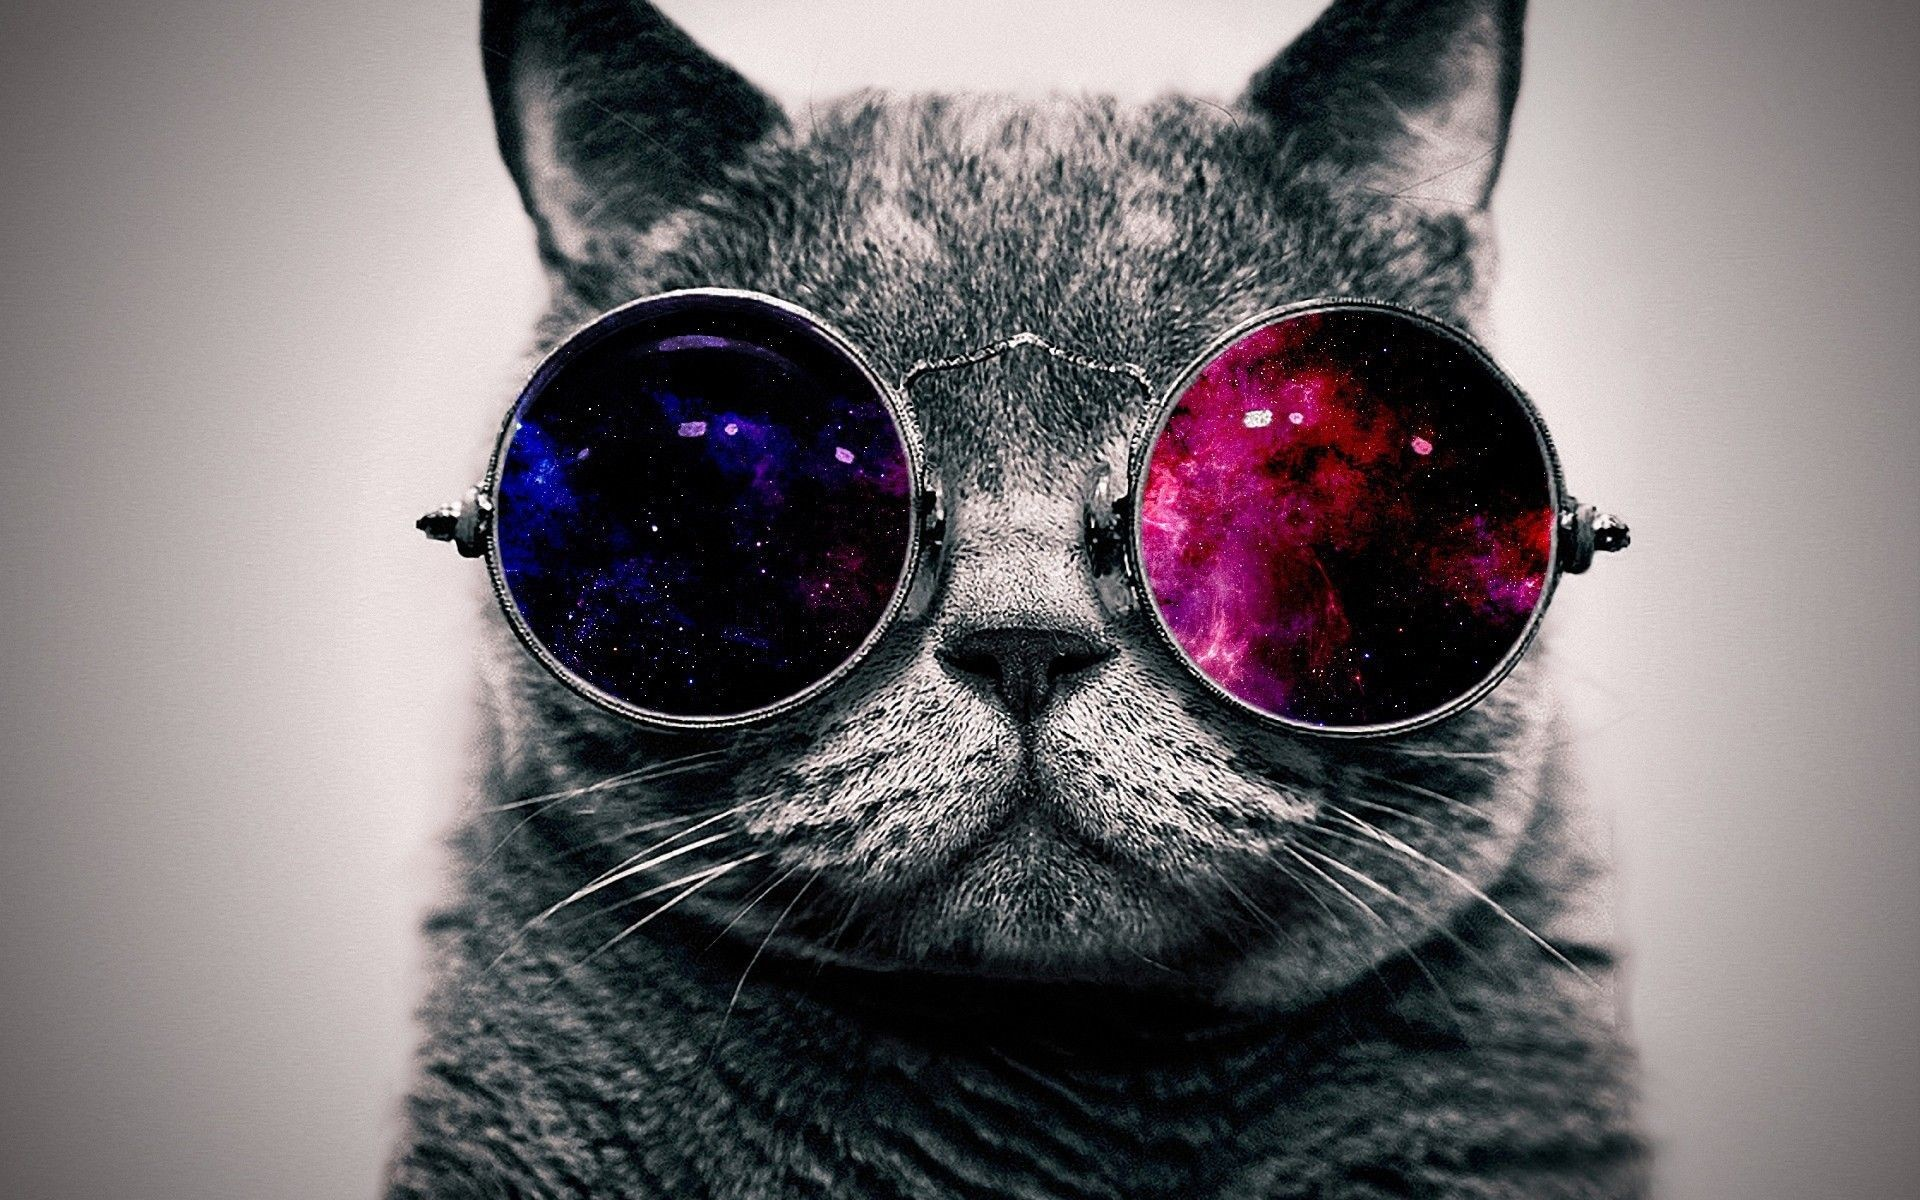 Res: 1920x1200, Space Cat Wallpaper Mobile | wallpapers | Pinterest | Cats